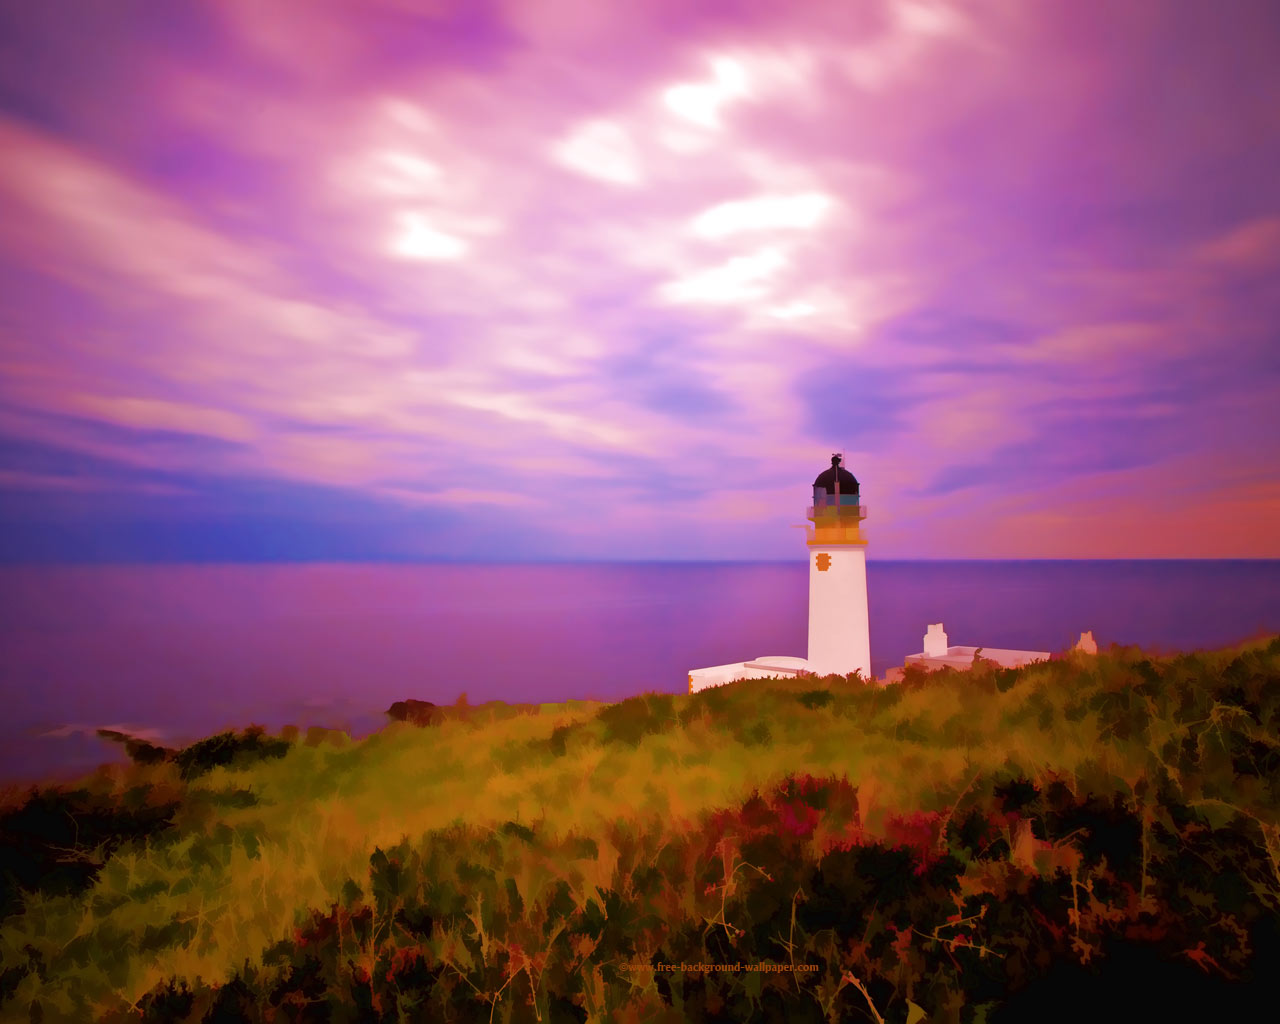 Rua Reidh Lighthouse Scotland Beautiful Desktop Wallpaper   1280x1024 1280x1024